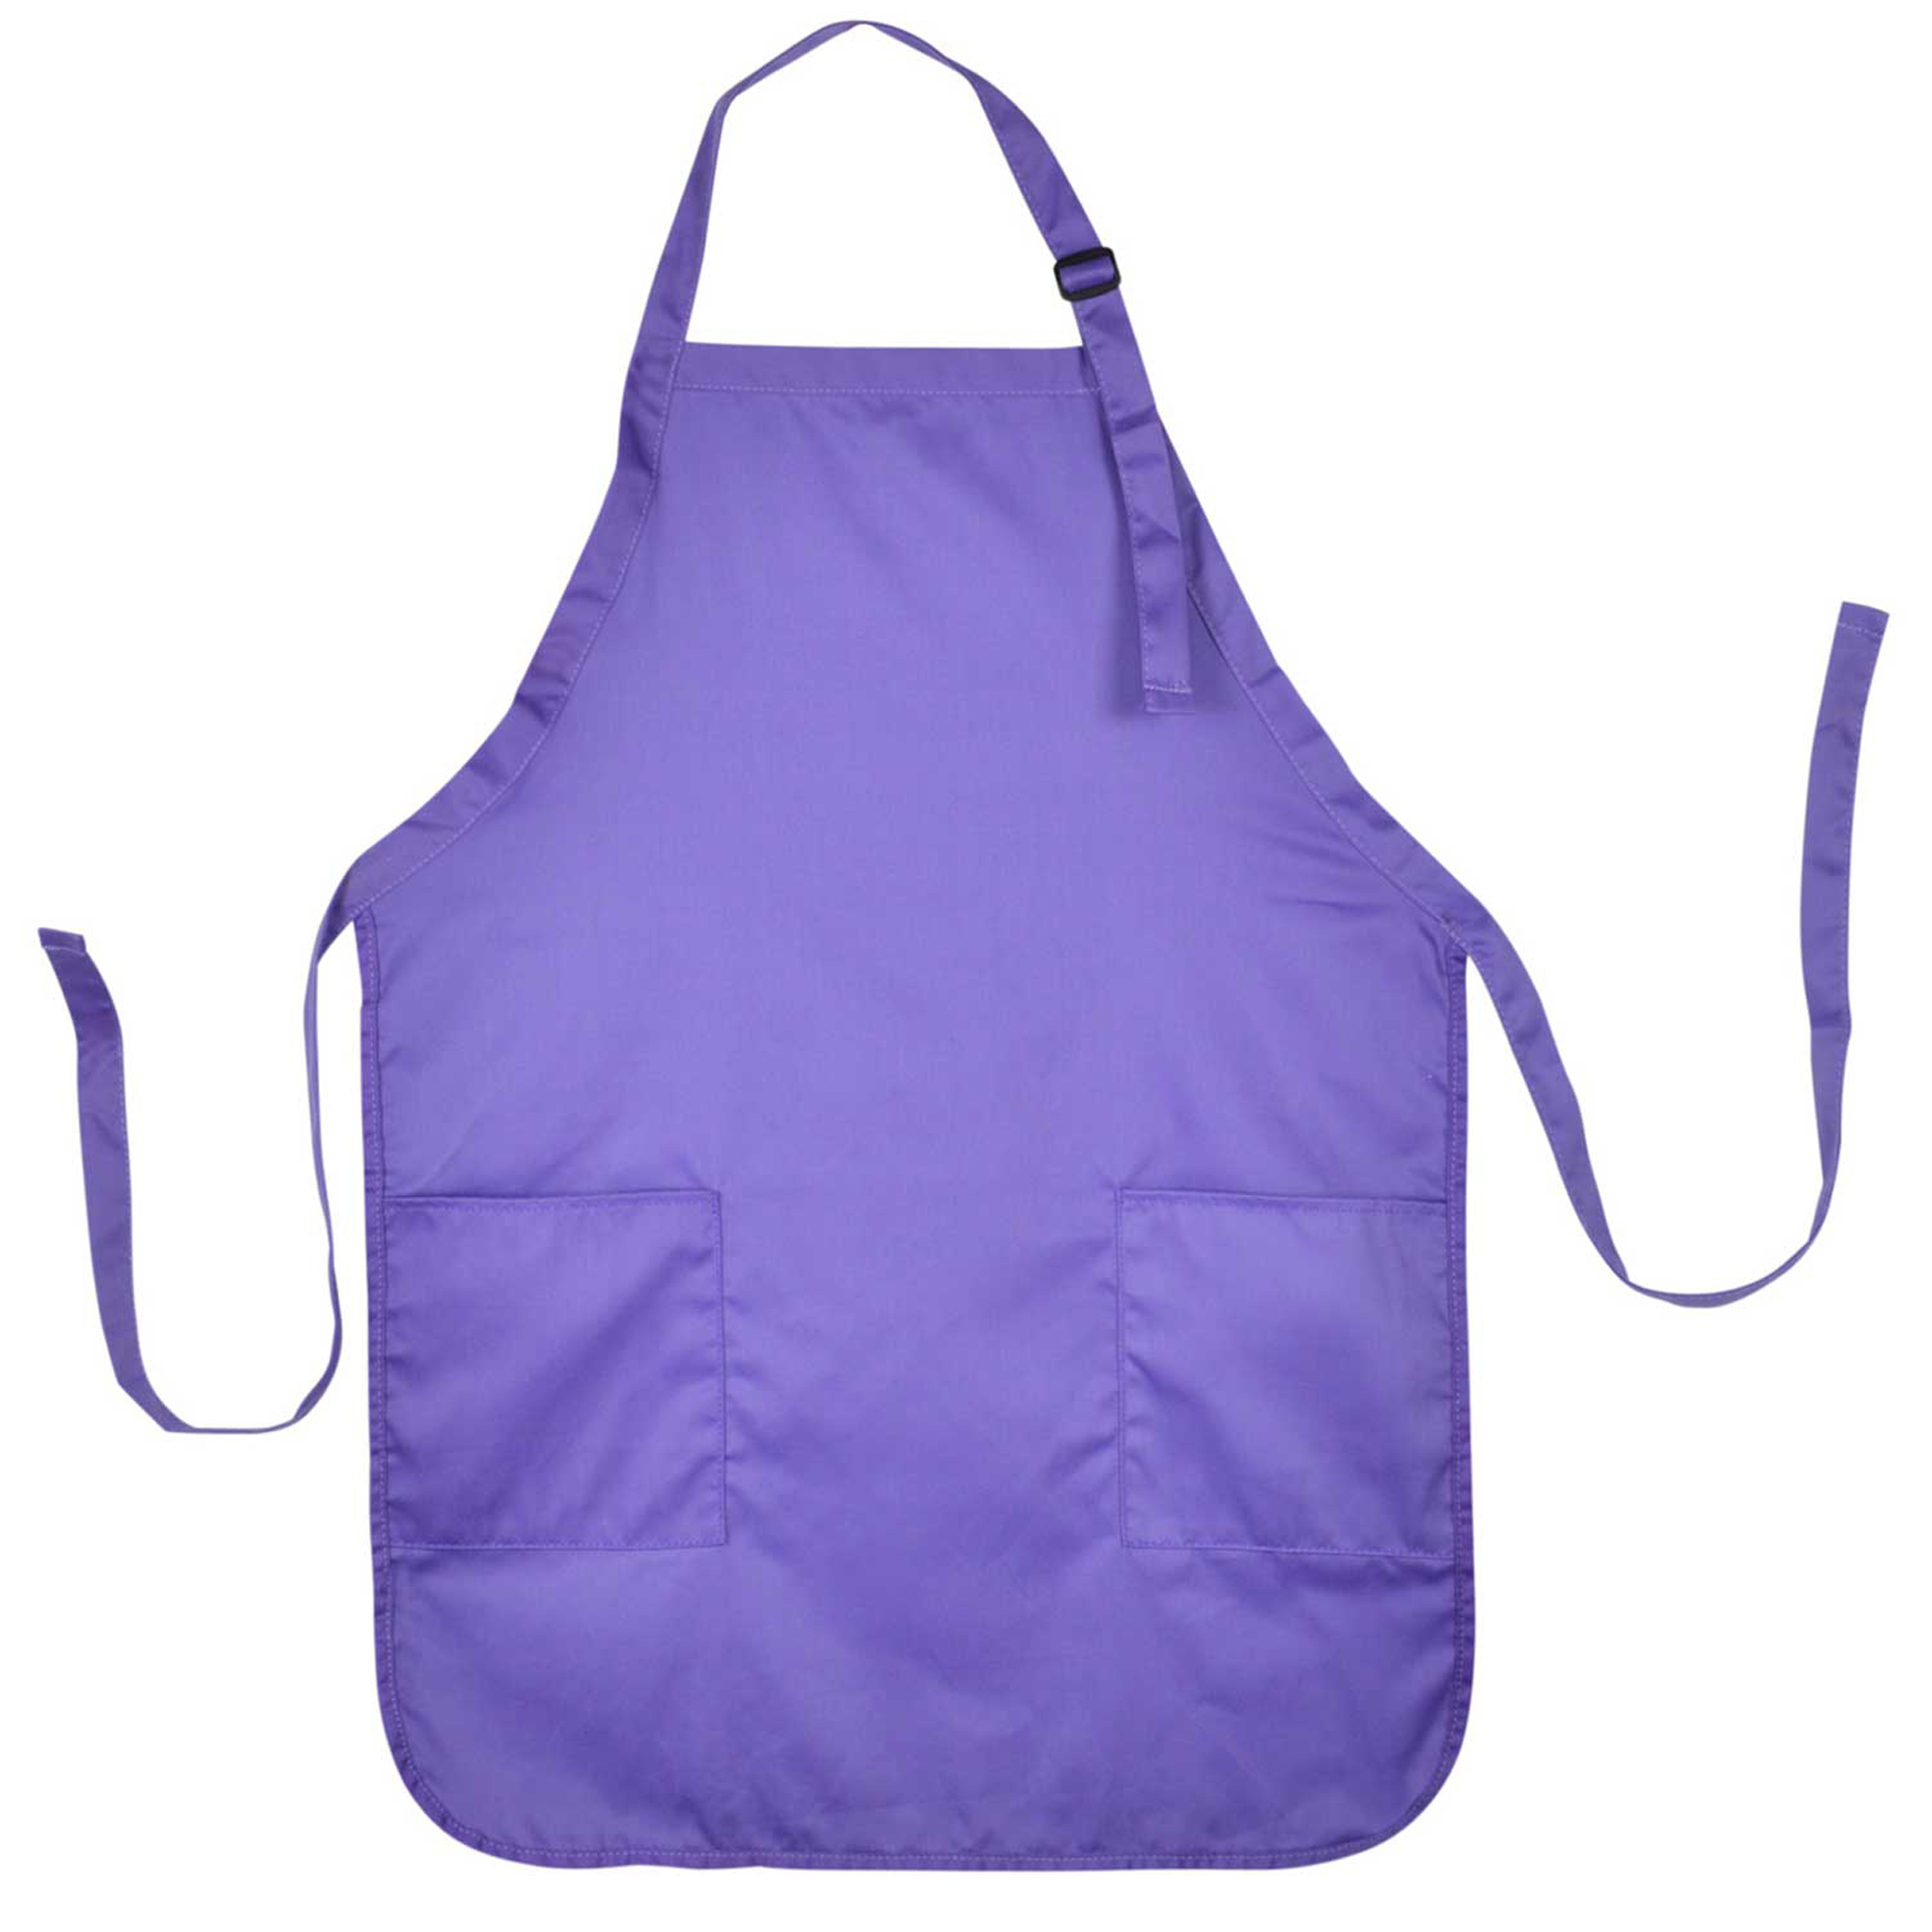 DALIX Apron Commercial Restaurant Home Bib Spun Poly Cotton Kitchen Aprons (2 Pockets) in Black